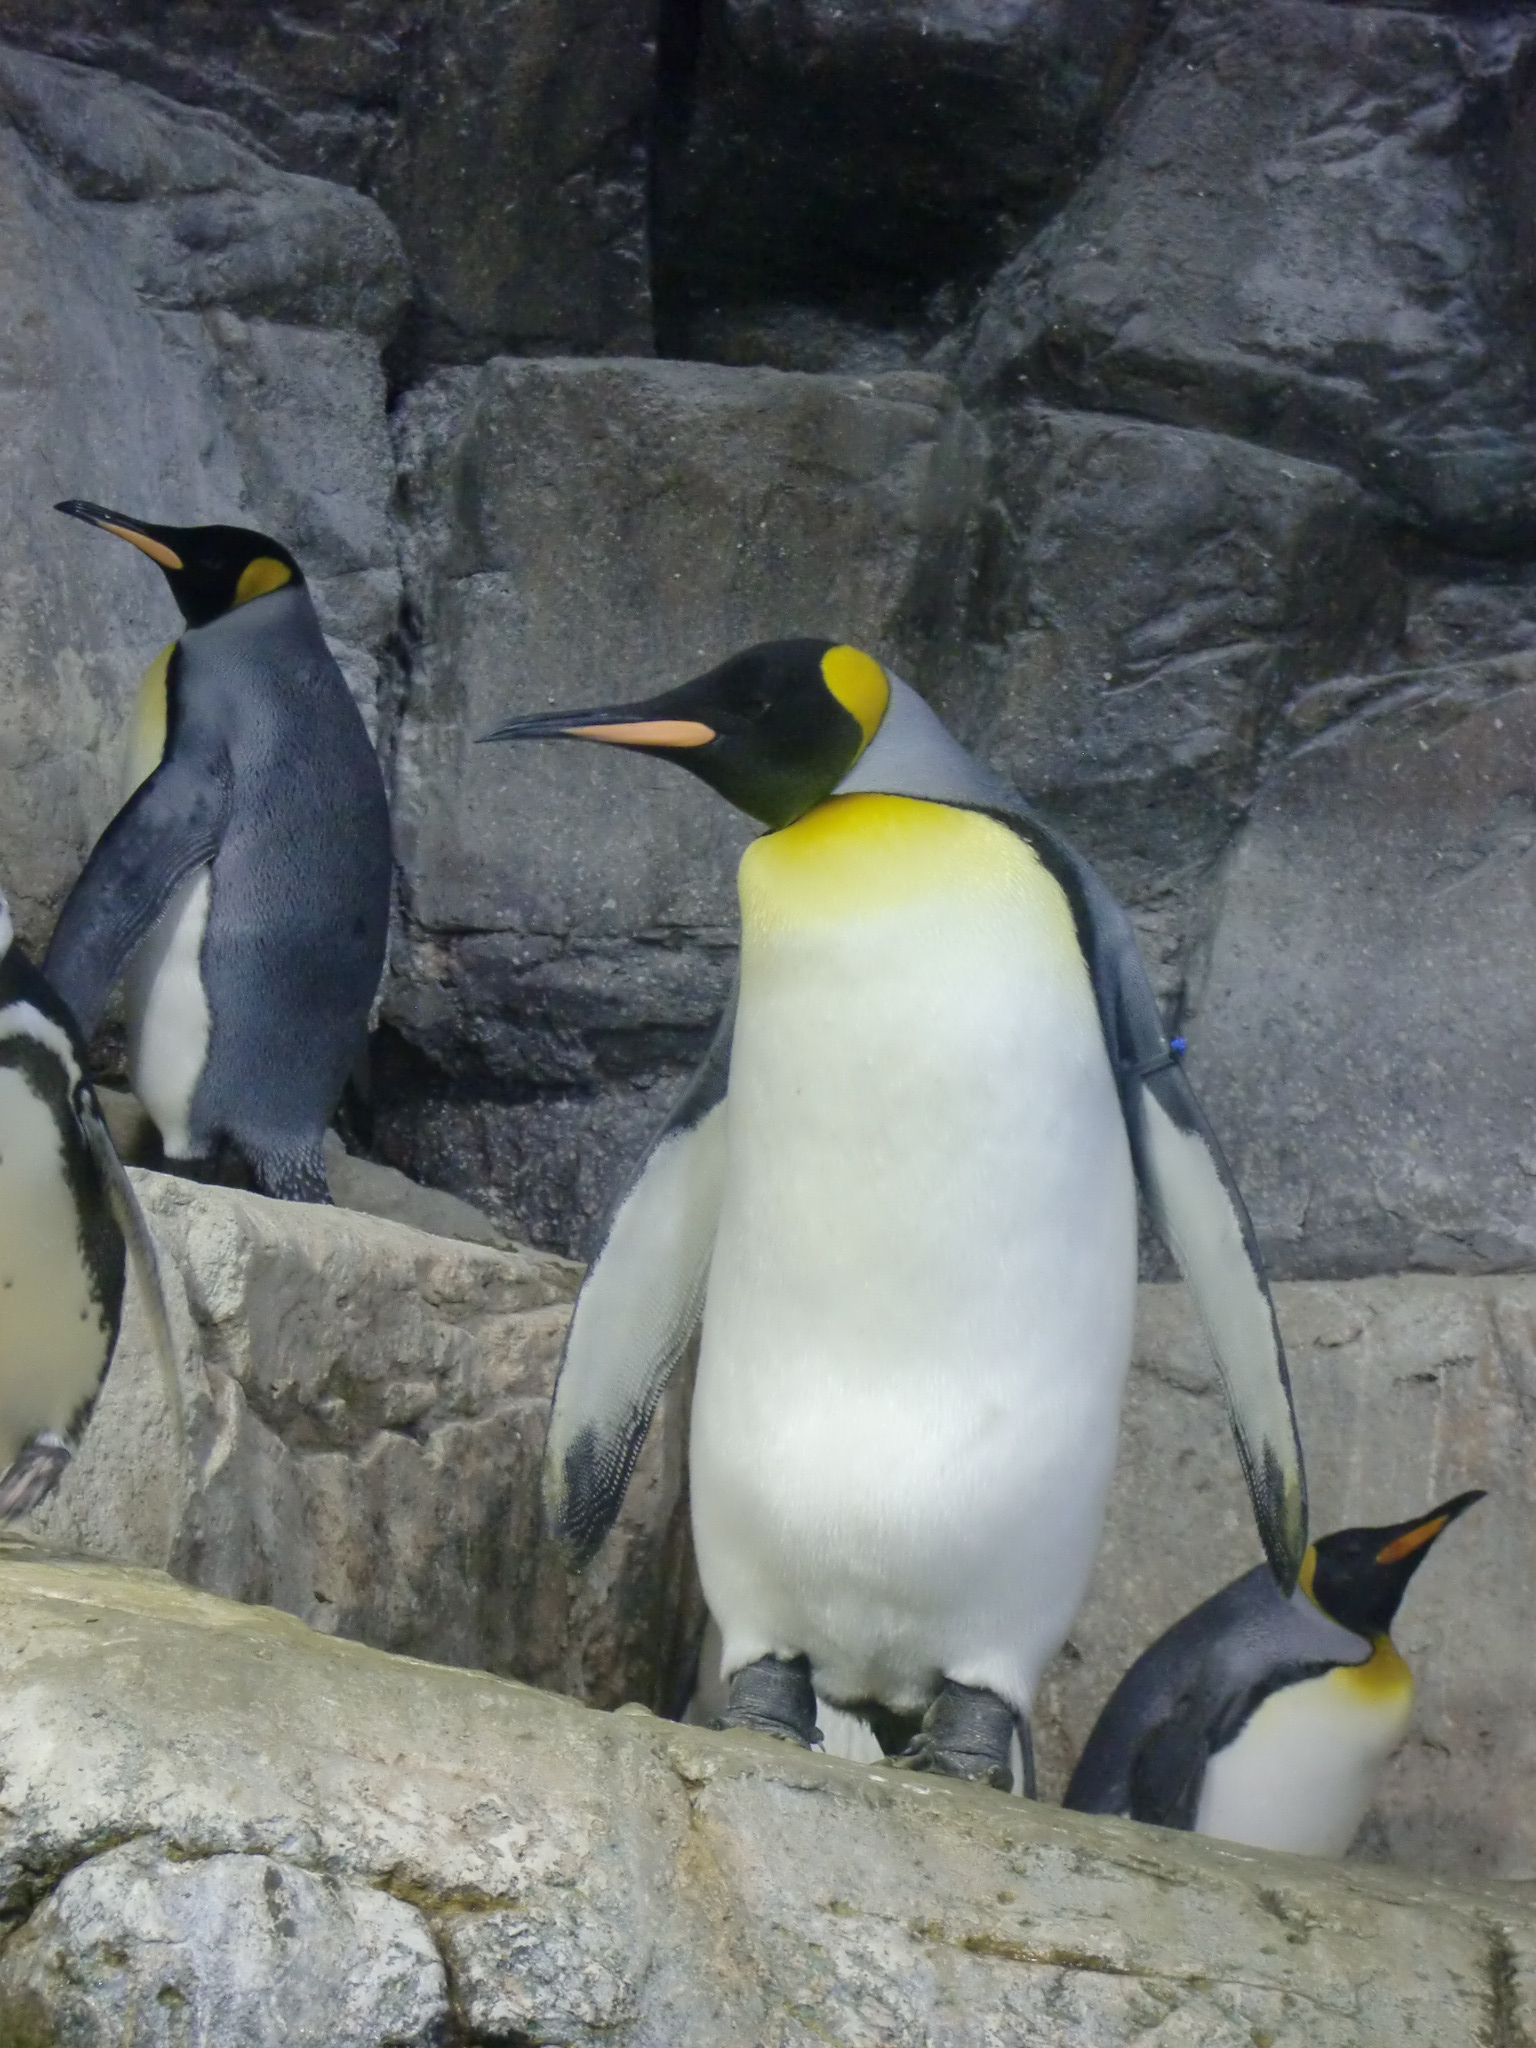 Penguin, Cold, Snow, Zoo, HQ Photo